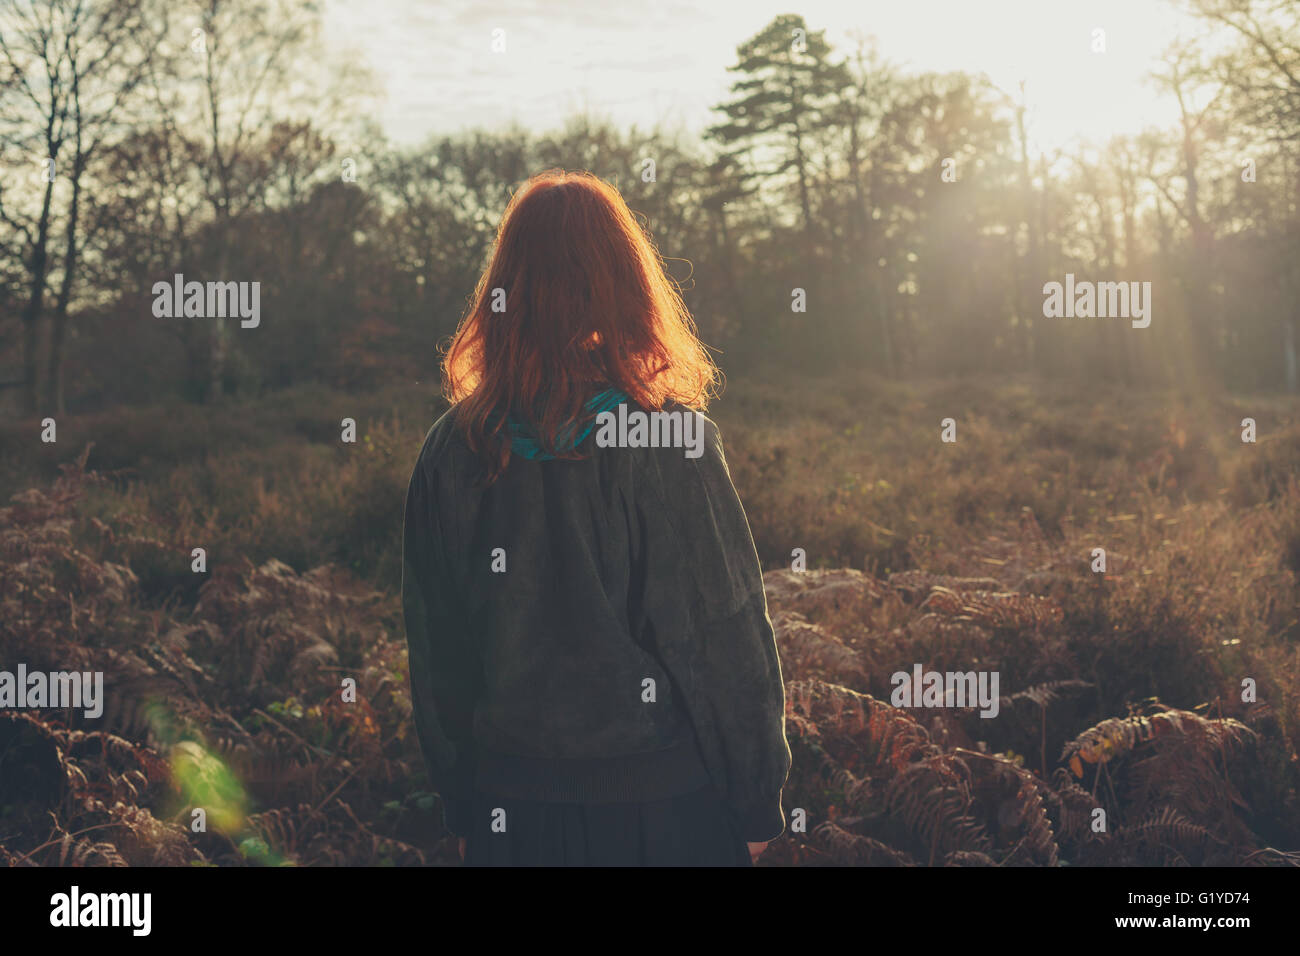 A young woman is standing in a forest at sunset Stock Photo